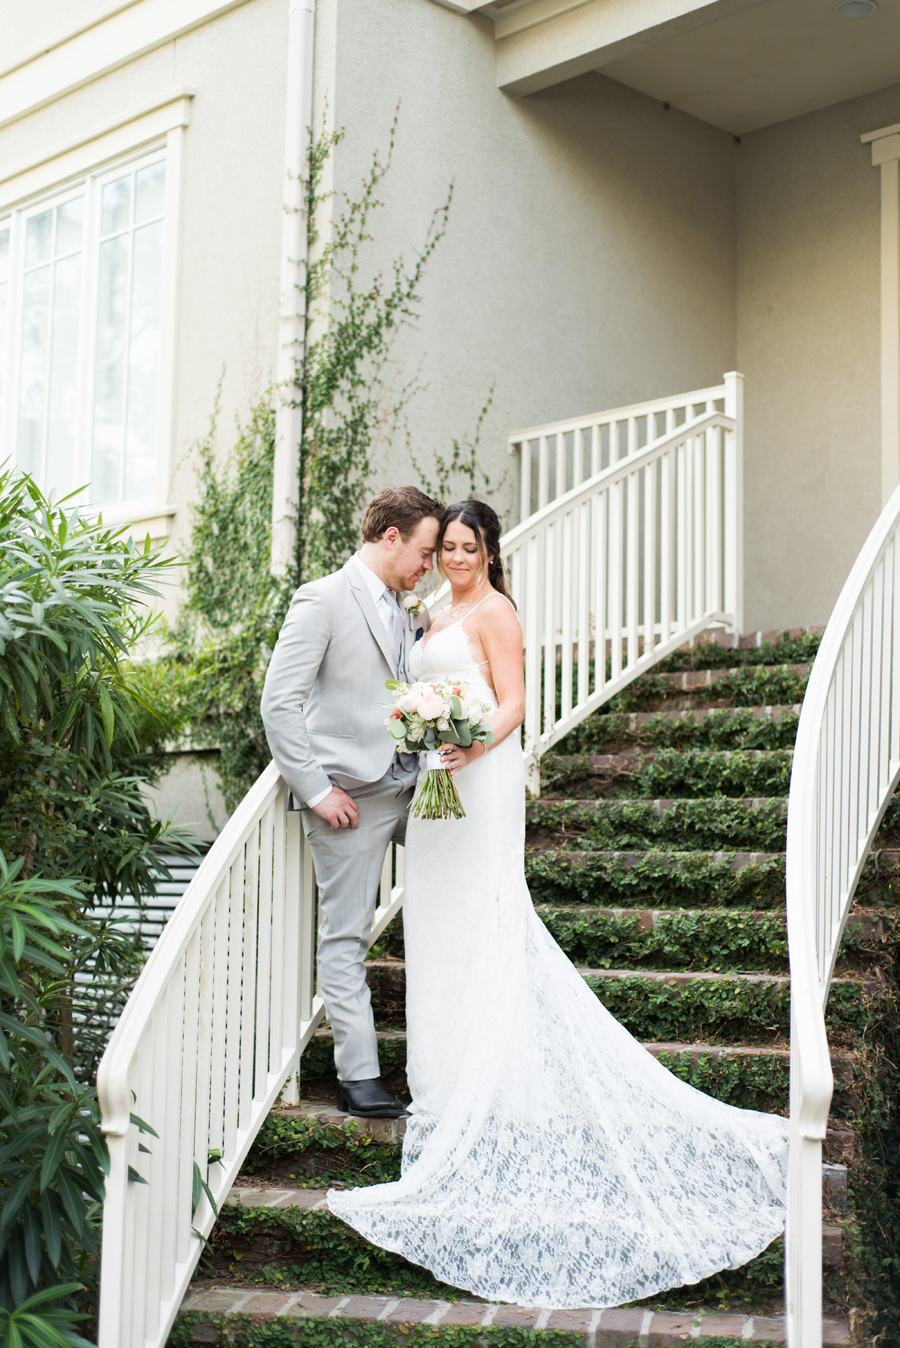 KrisandraEvans.com | Atlanta Wedding Photographer | 5 Urchin Manor